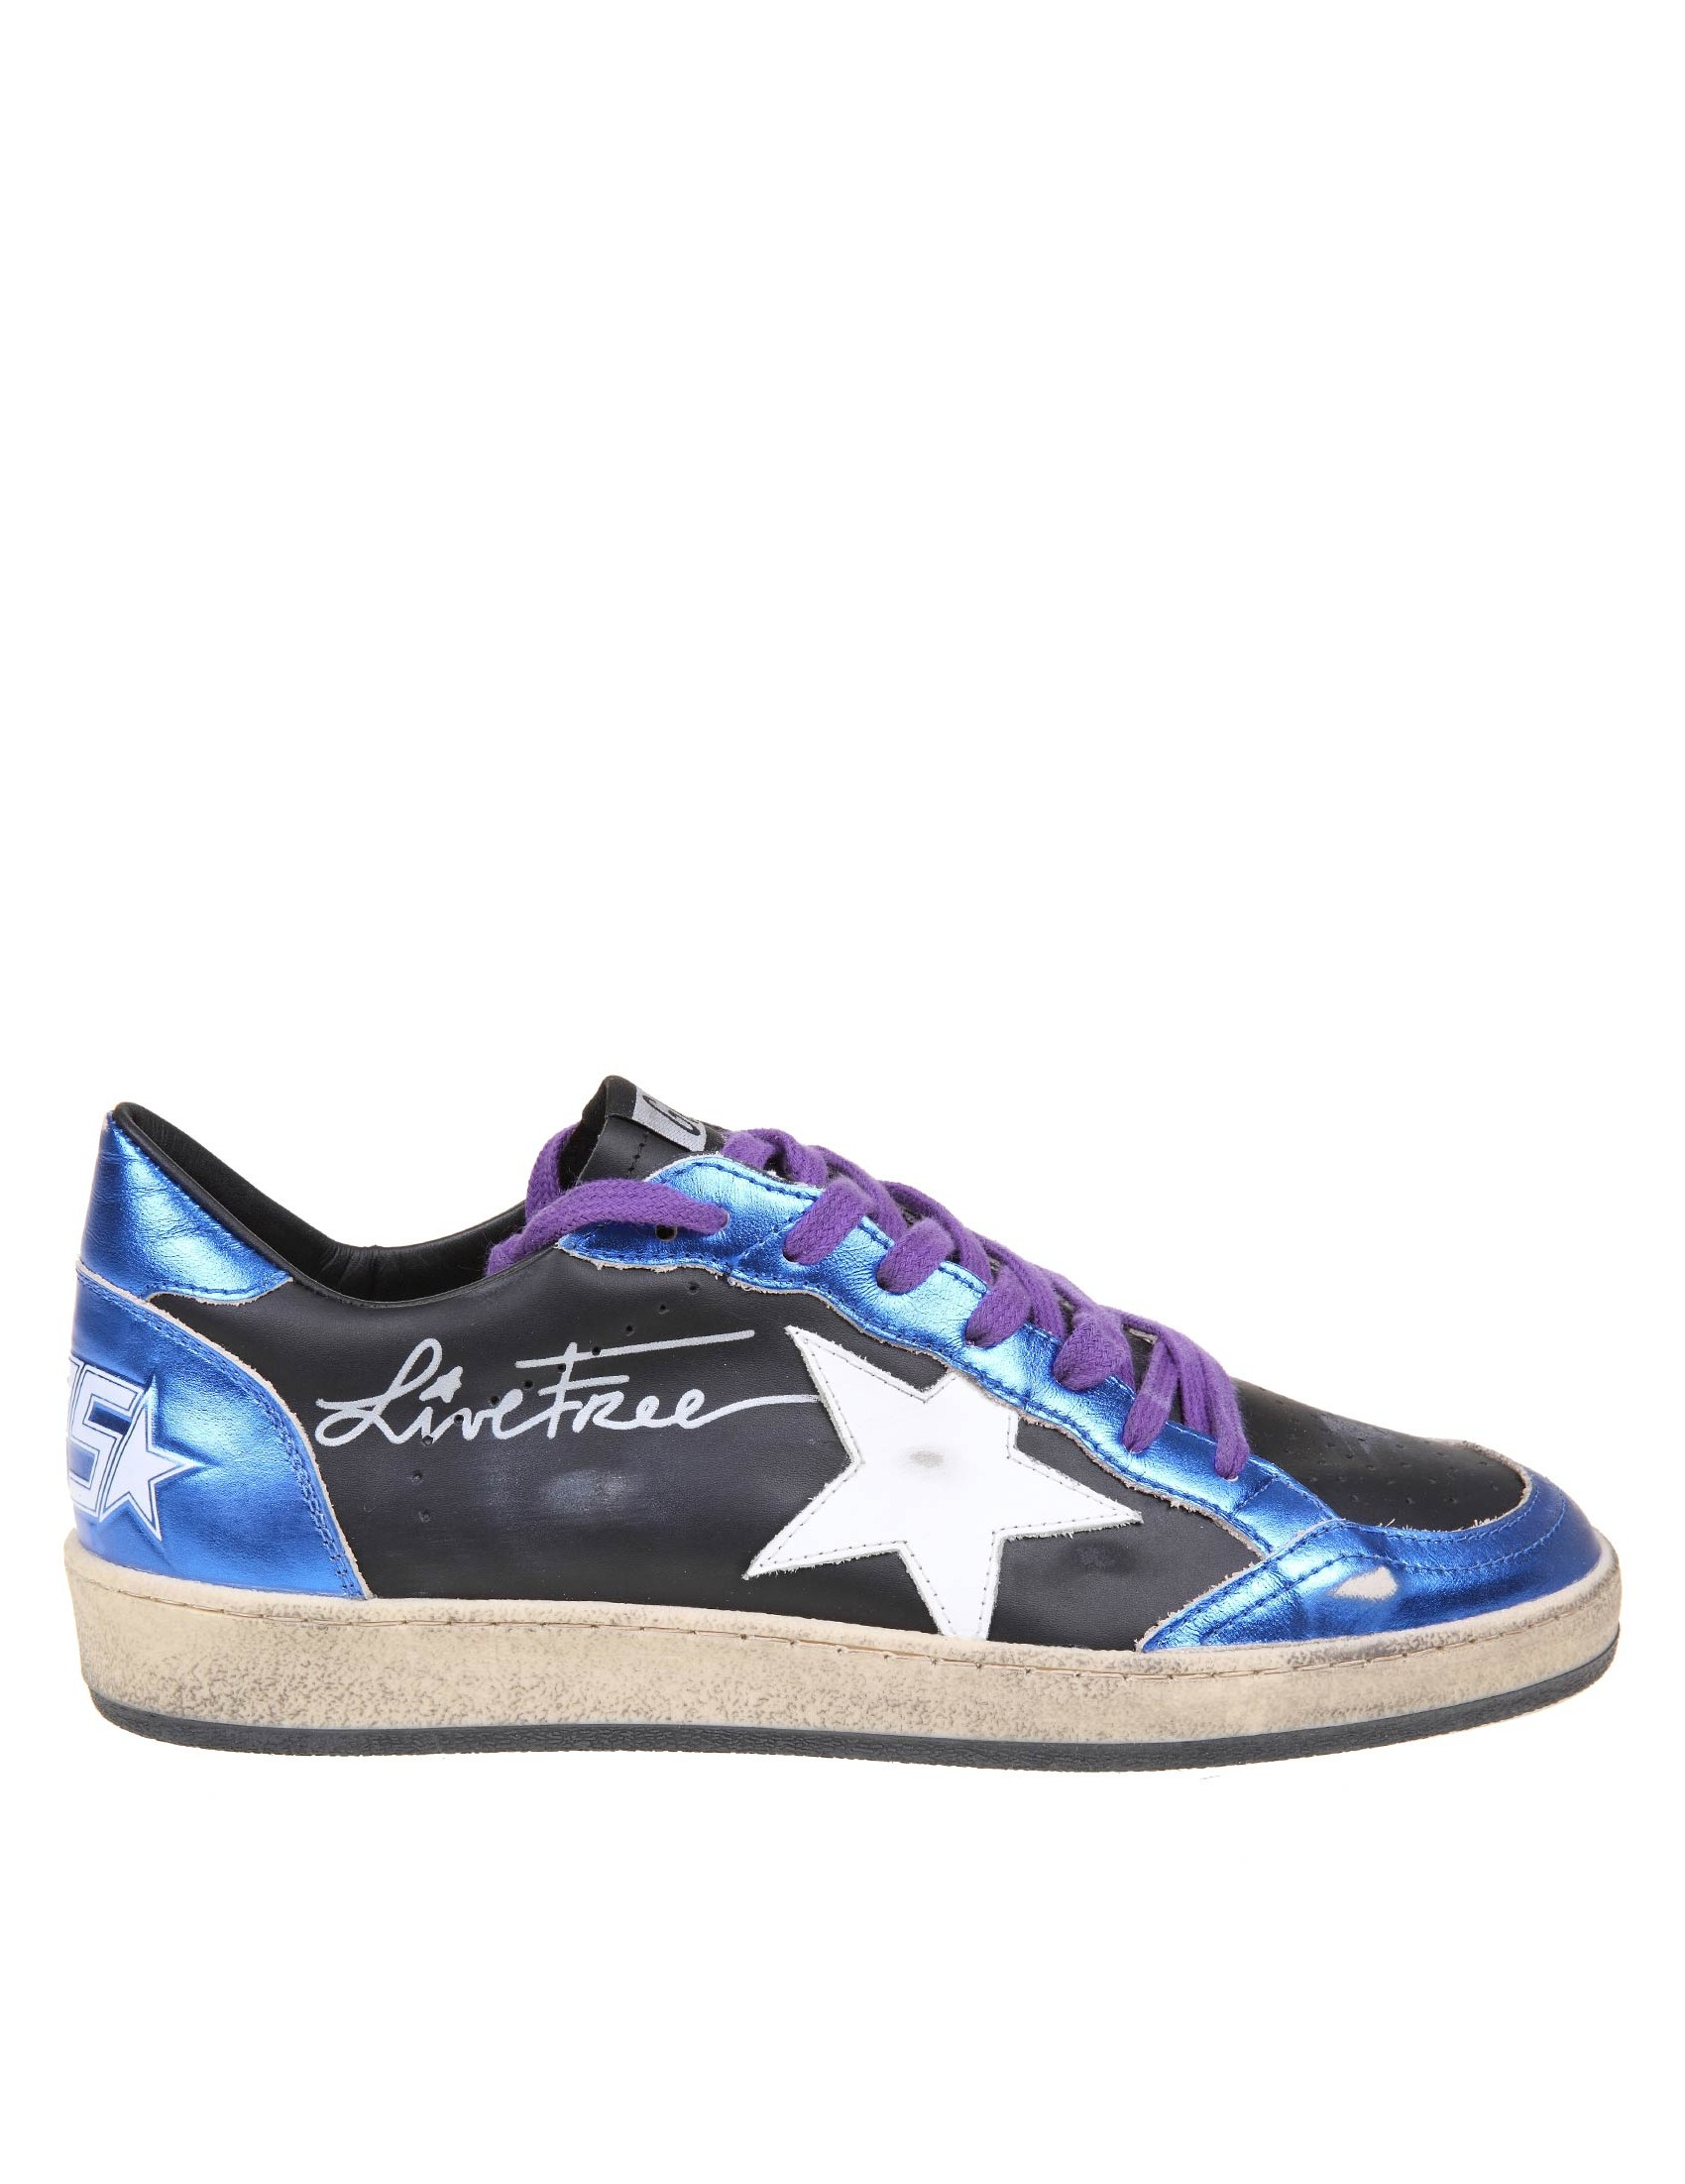 Golden Goose Sneakers GOLDEN GOOSE BALL STAR IN BLACK AND BLUE LAMINATED LEATHER